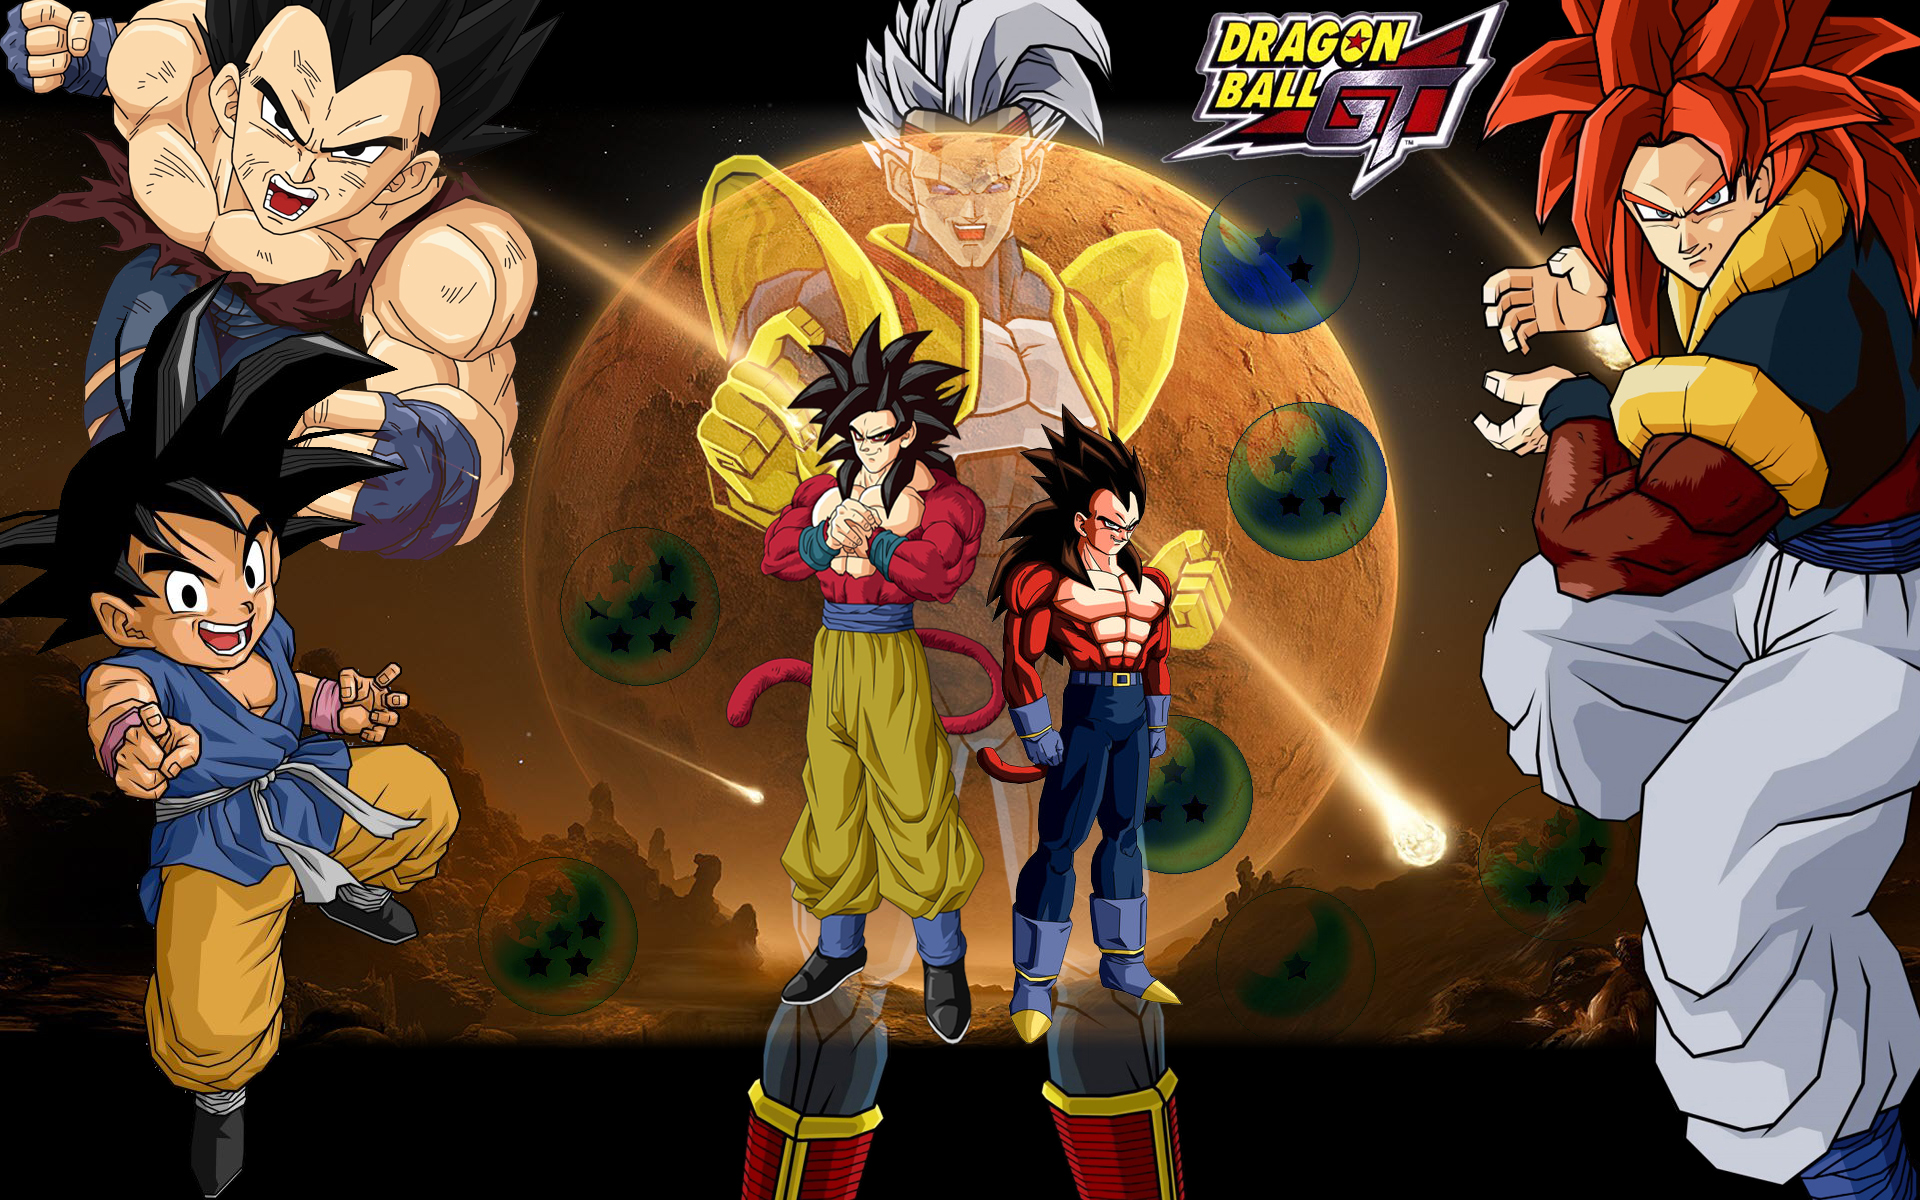 30 Amazing Dragon Ball Z Gt Wallpapers In High Quality Paulu Collens